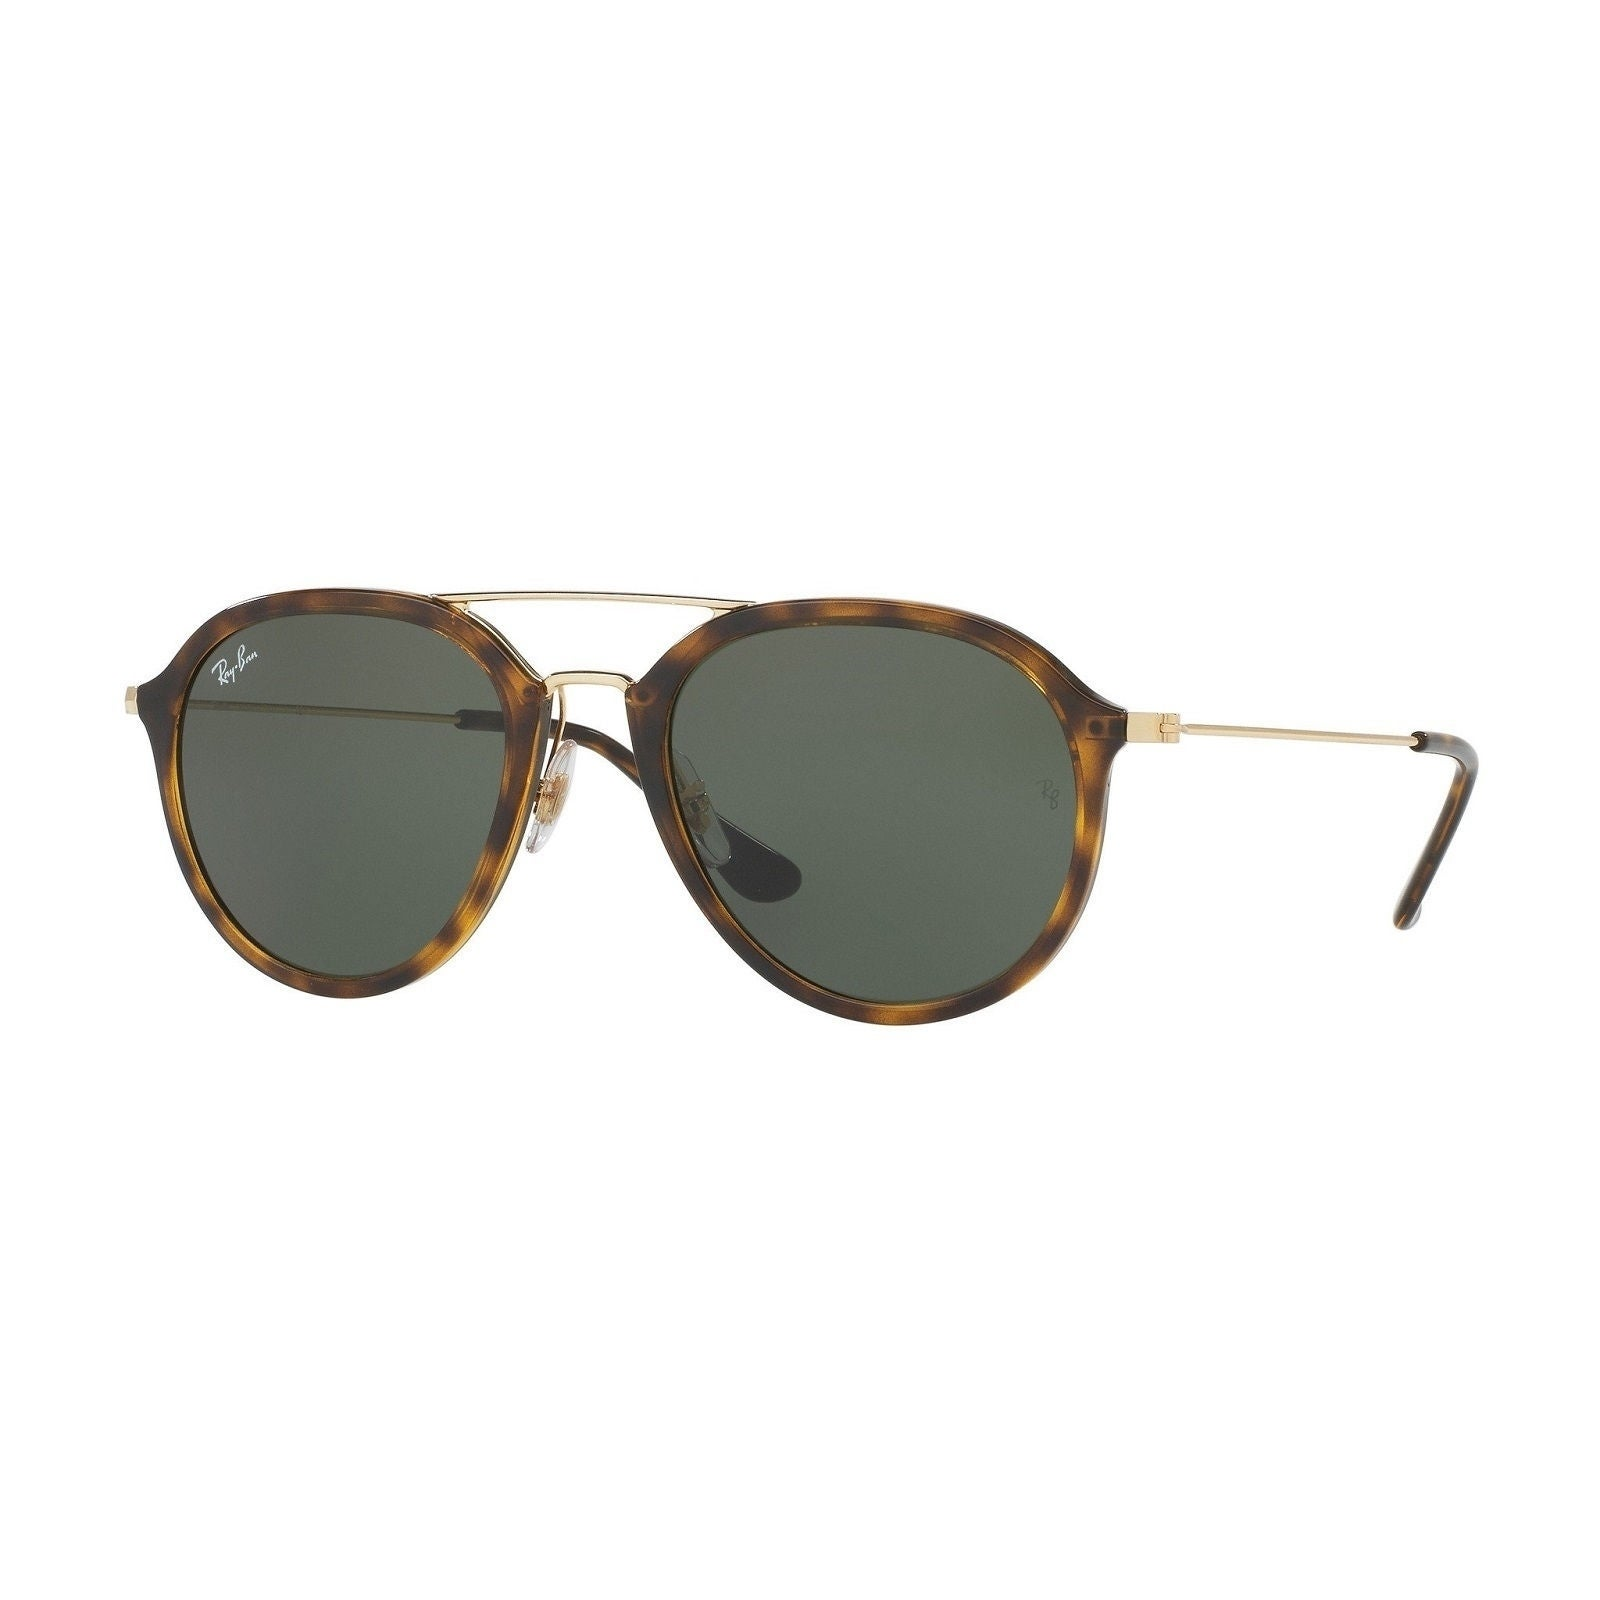 9eec70ab78e Shop Ray-Ban Unisex RB4253 710 Tortoise Gold Frame Green Classic 53mm Lens  Sunglasses - Ships To Canada - Overstock - 14335651